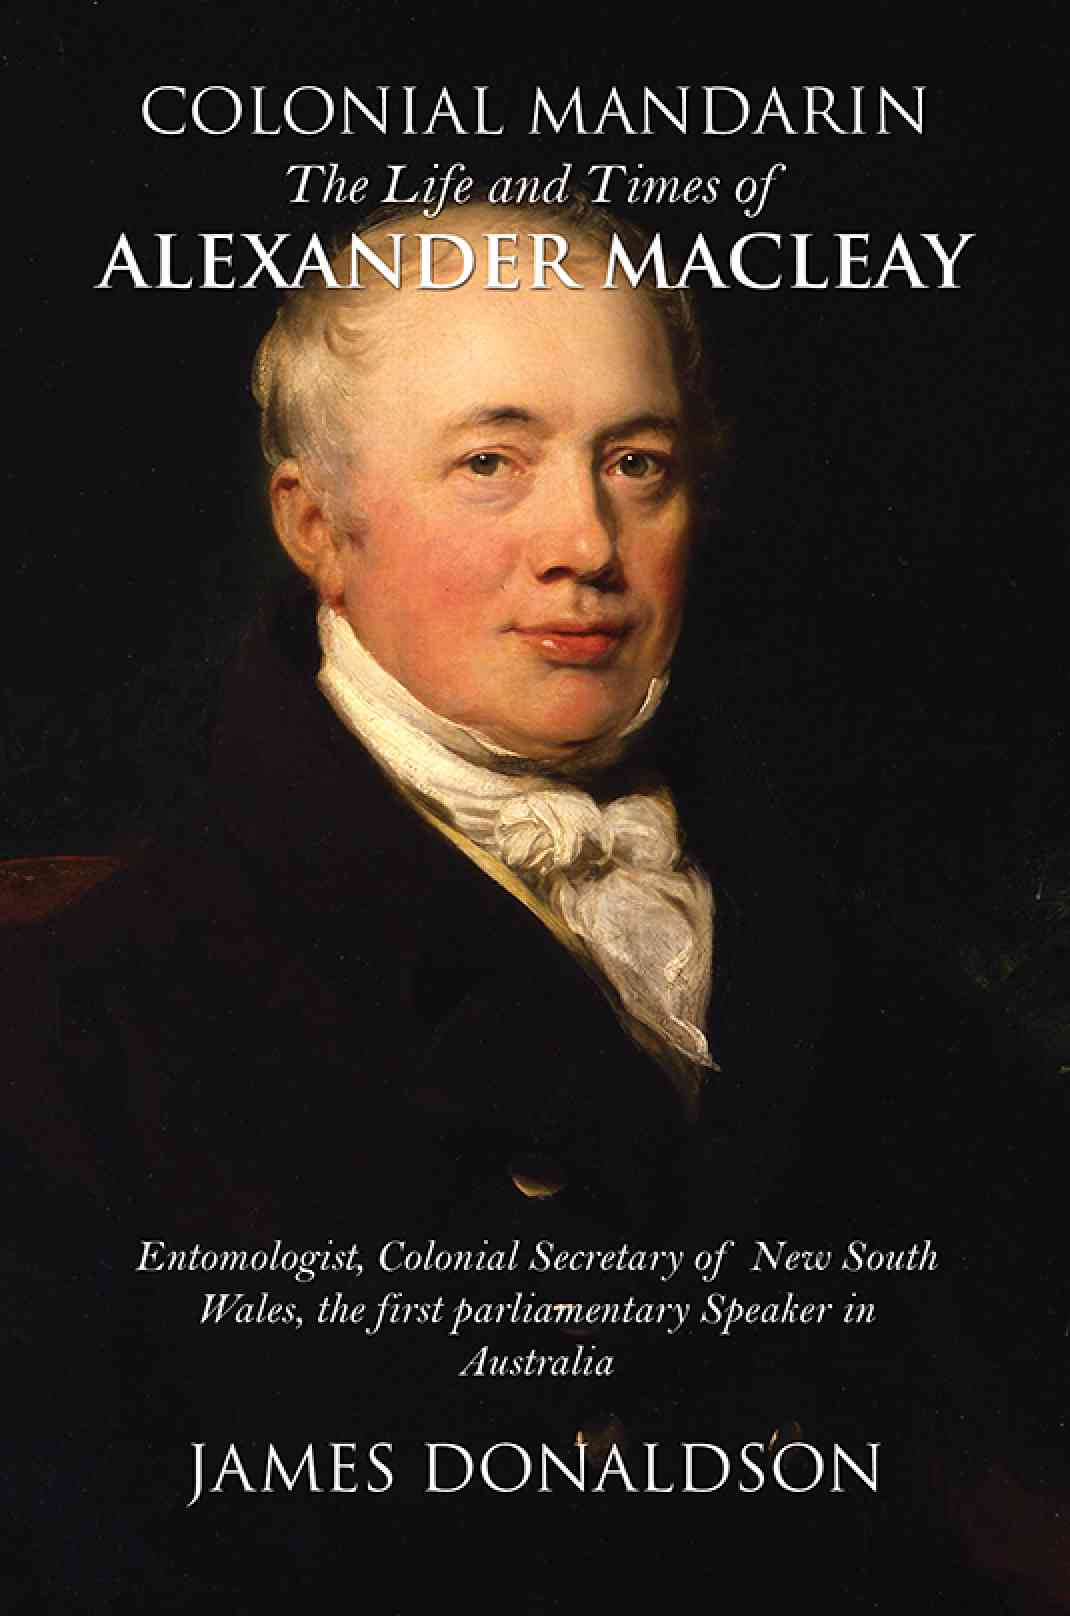 Colonial Mandarin: The Life and Times of Alexander Macleay